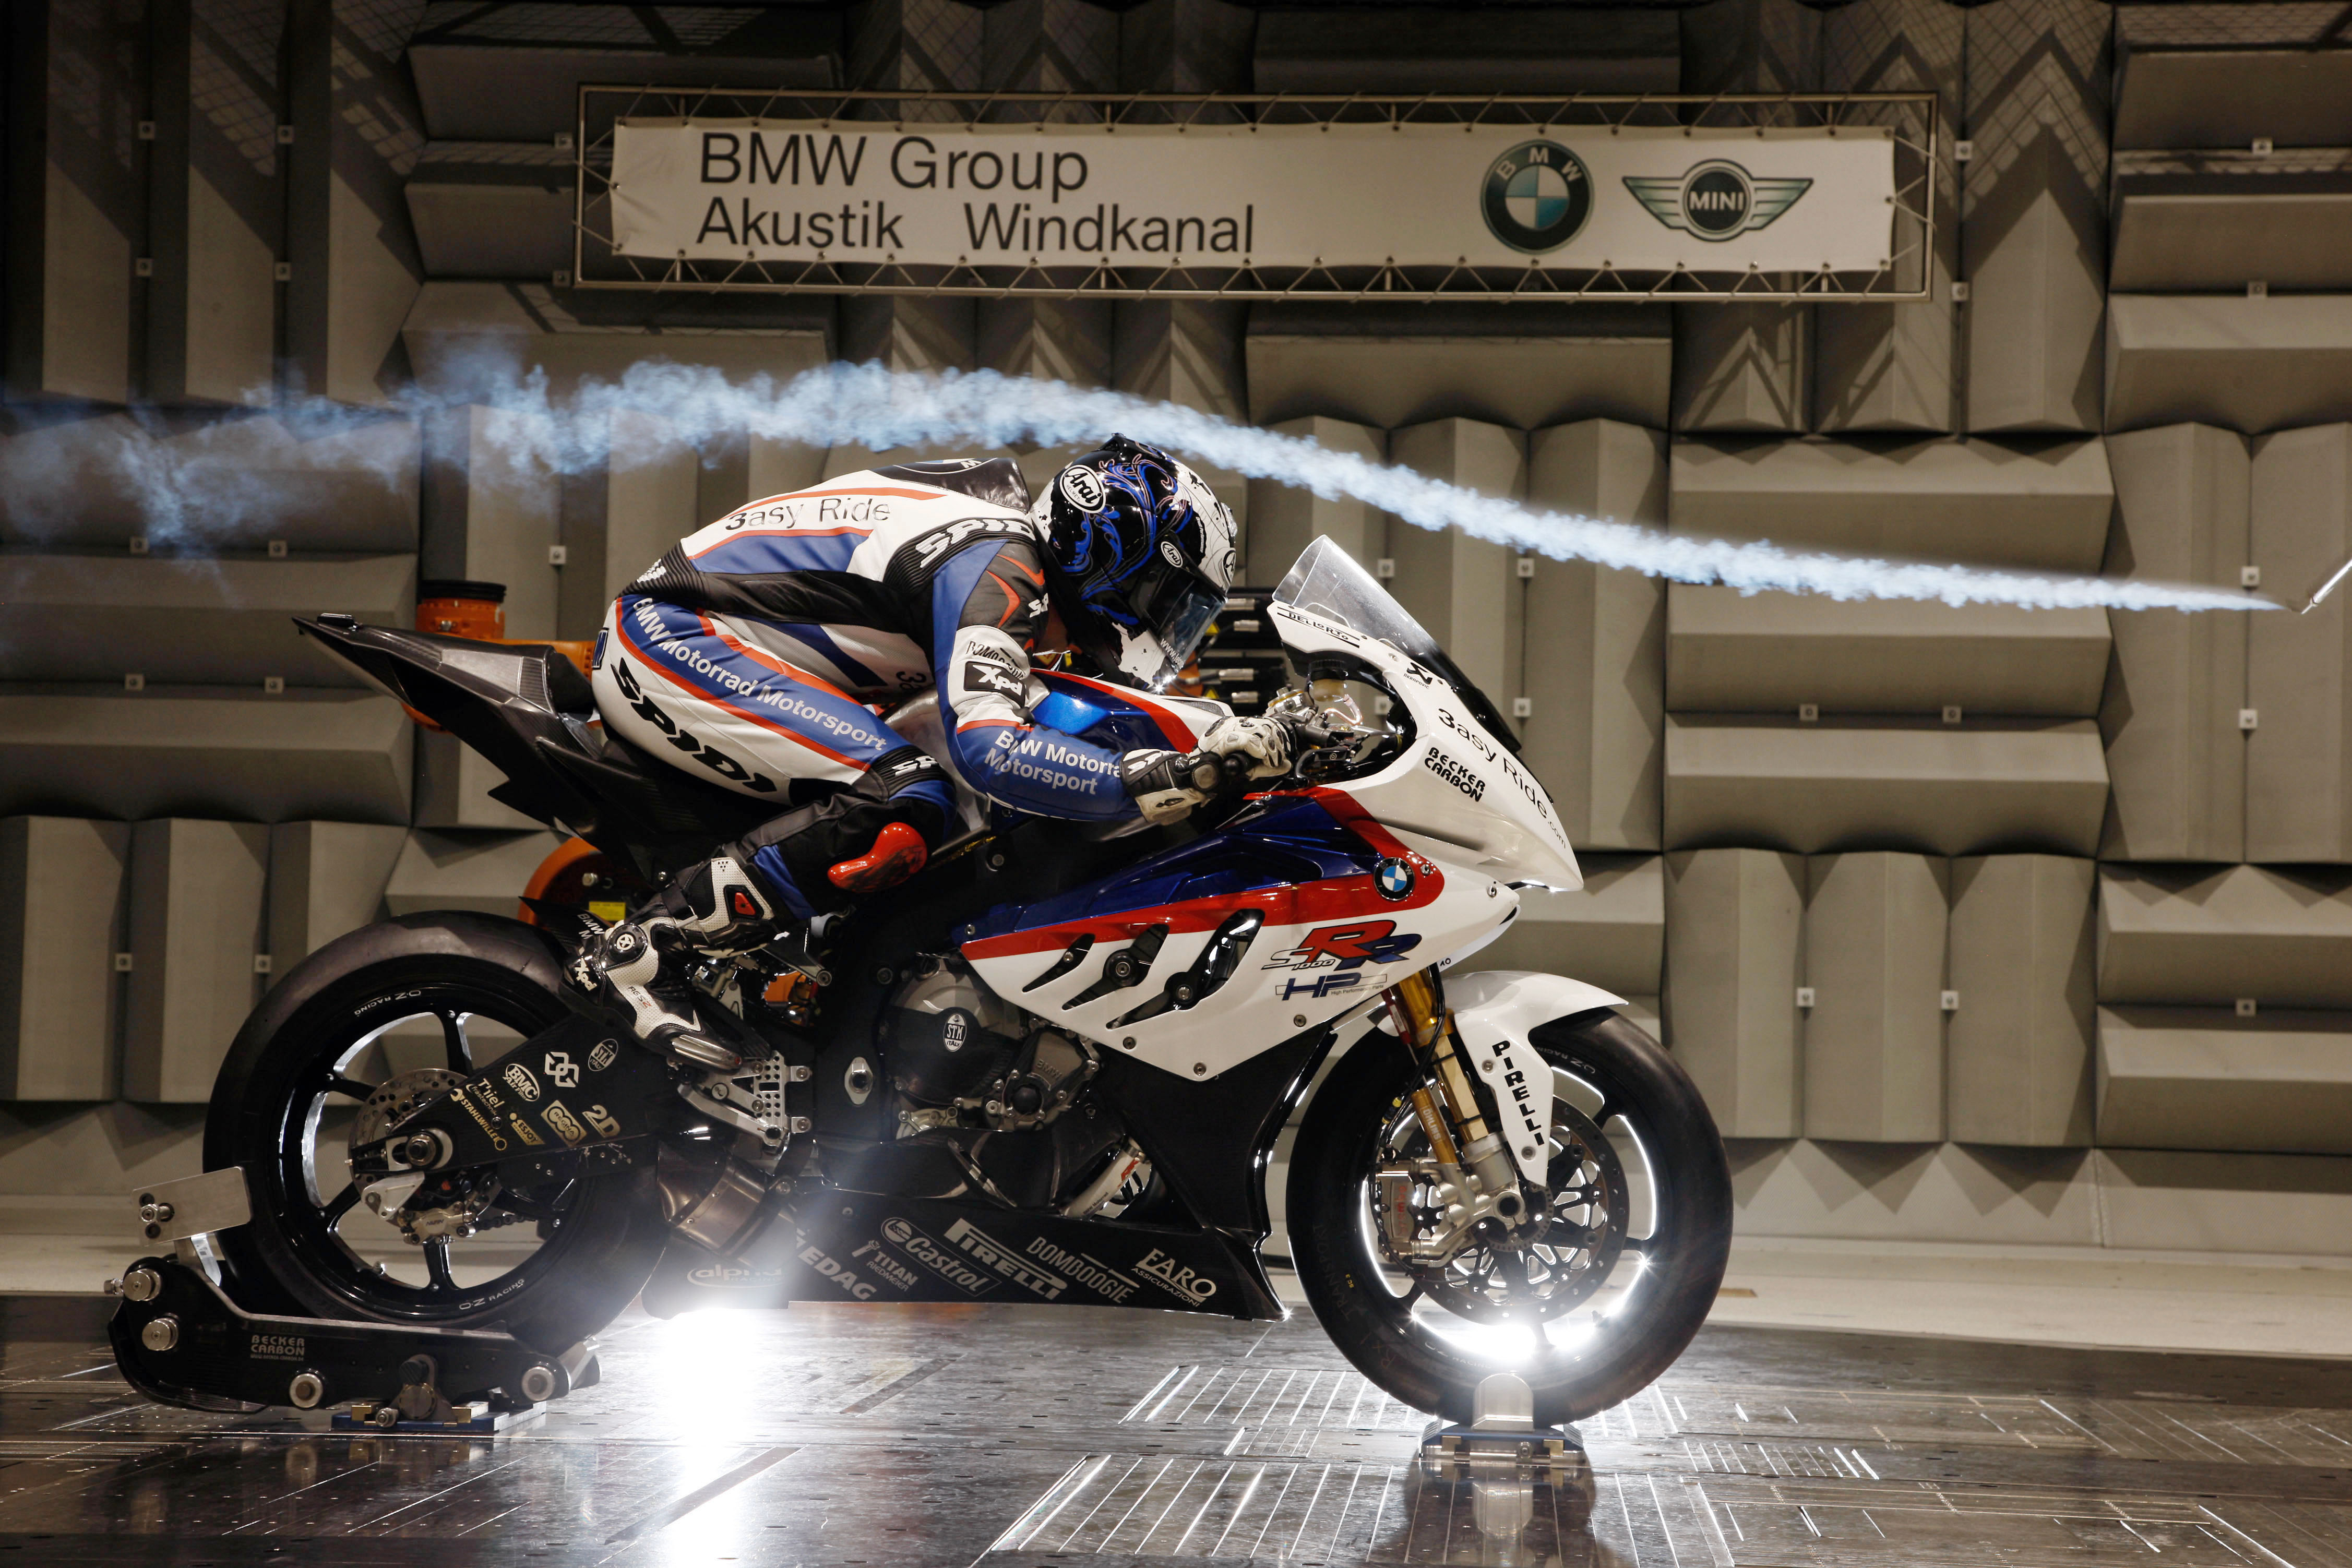 Bmw Wallpaper Hd 2560x1440 2 Bmw S1000rr Fonds D 233 Cran Hd Arri 232 Re Plans Wallpaper